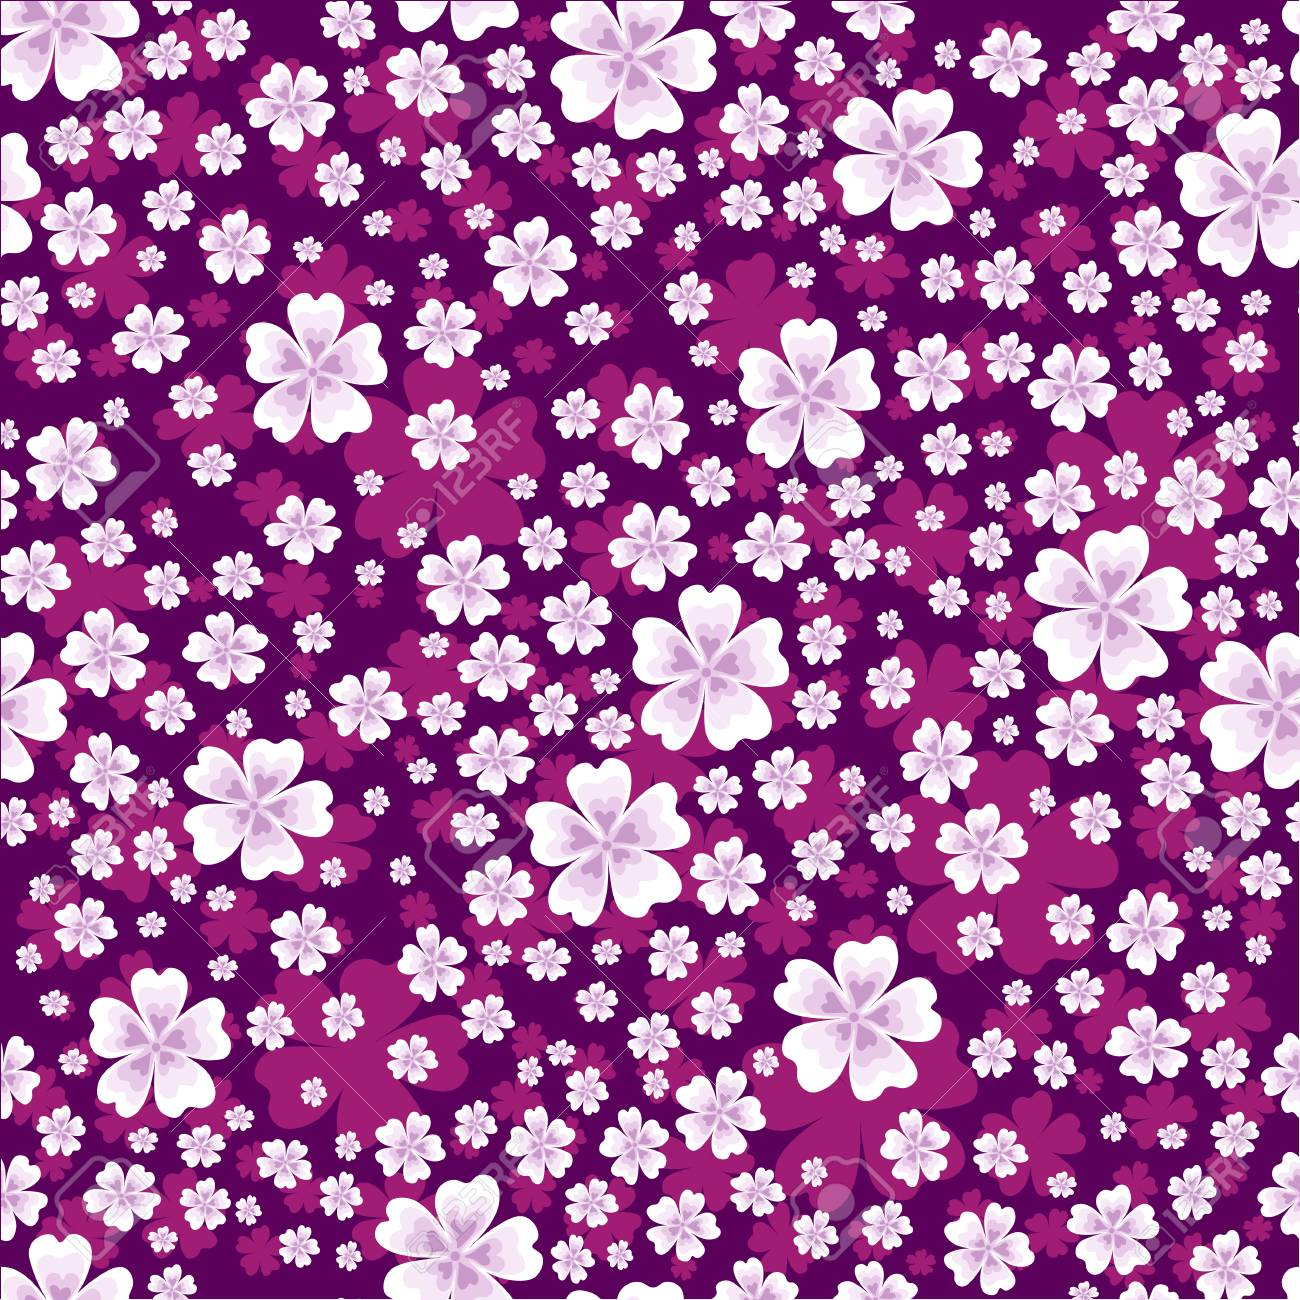 Seamless Floral Pattern With White And Pink Colored Flowers